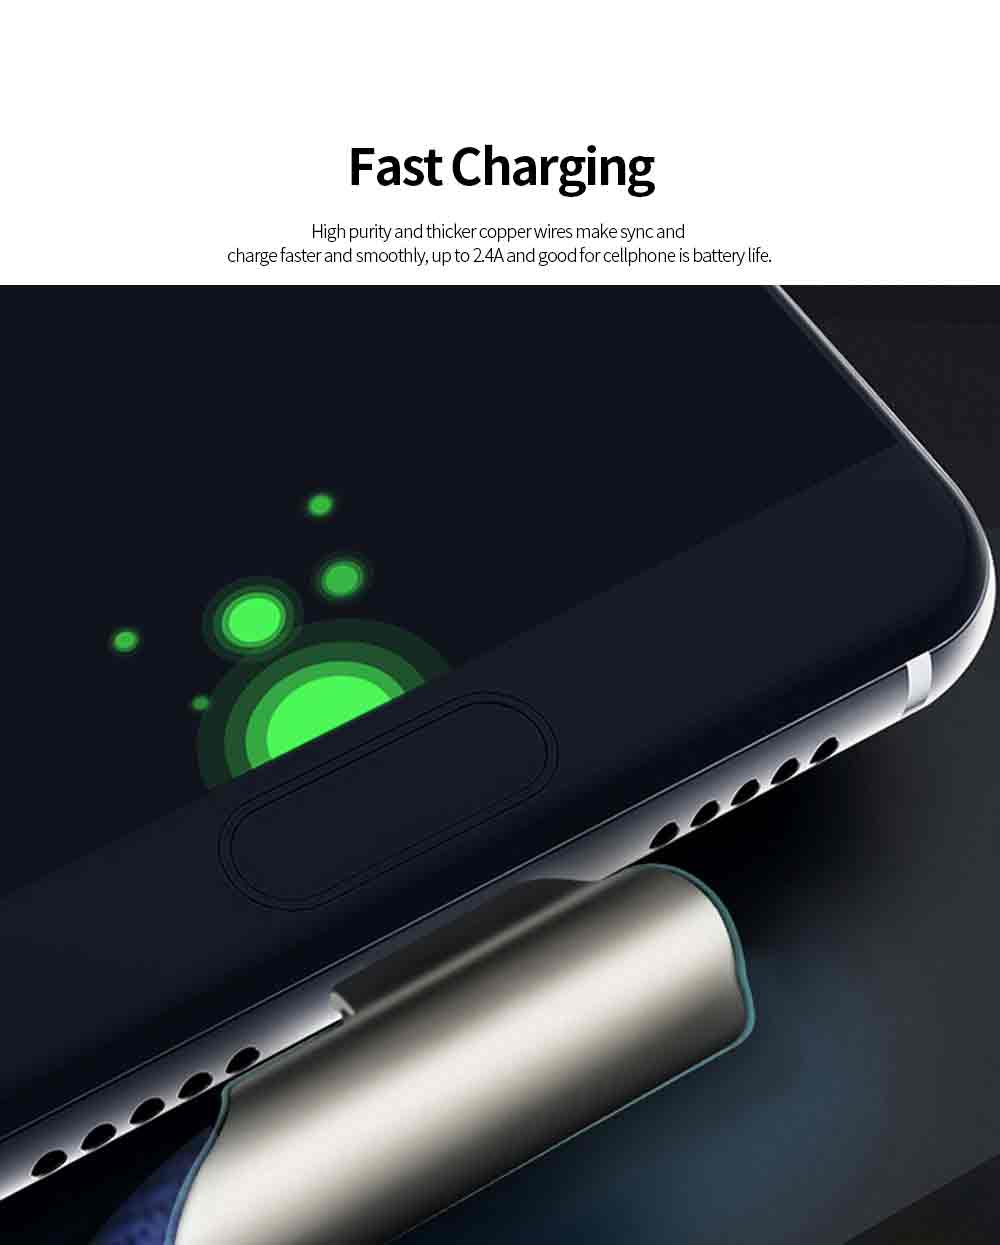 1M Apple Android Type C Date Cable Durable Fast Charging Nylon Braided Charging Cord for iPhone Android Devices 2